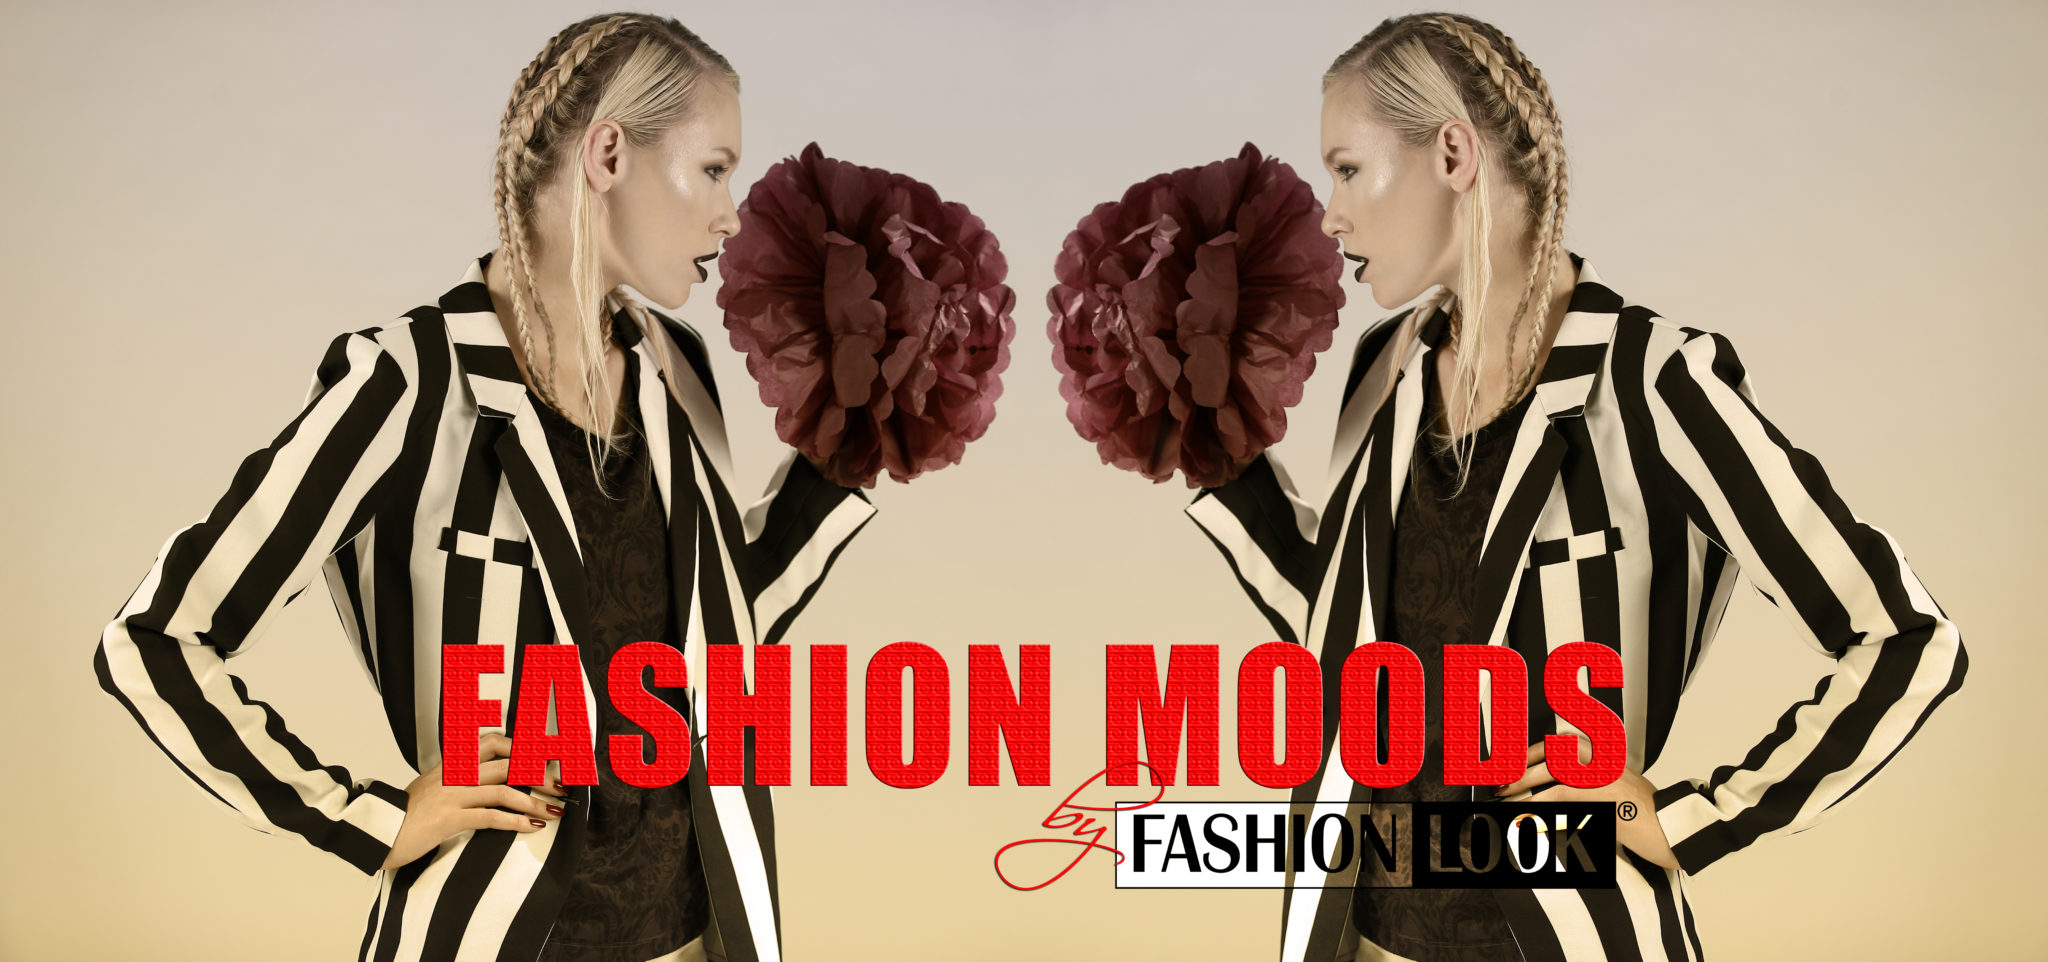 LSZ photography uvádza FASHION MOODS by Fashionlook + ROZHOVOR 1